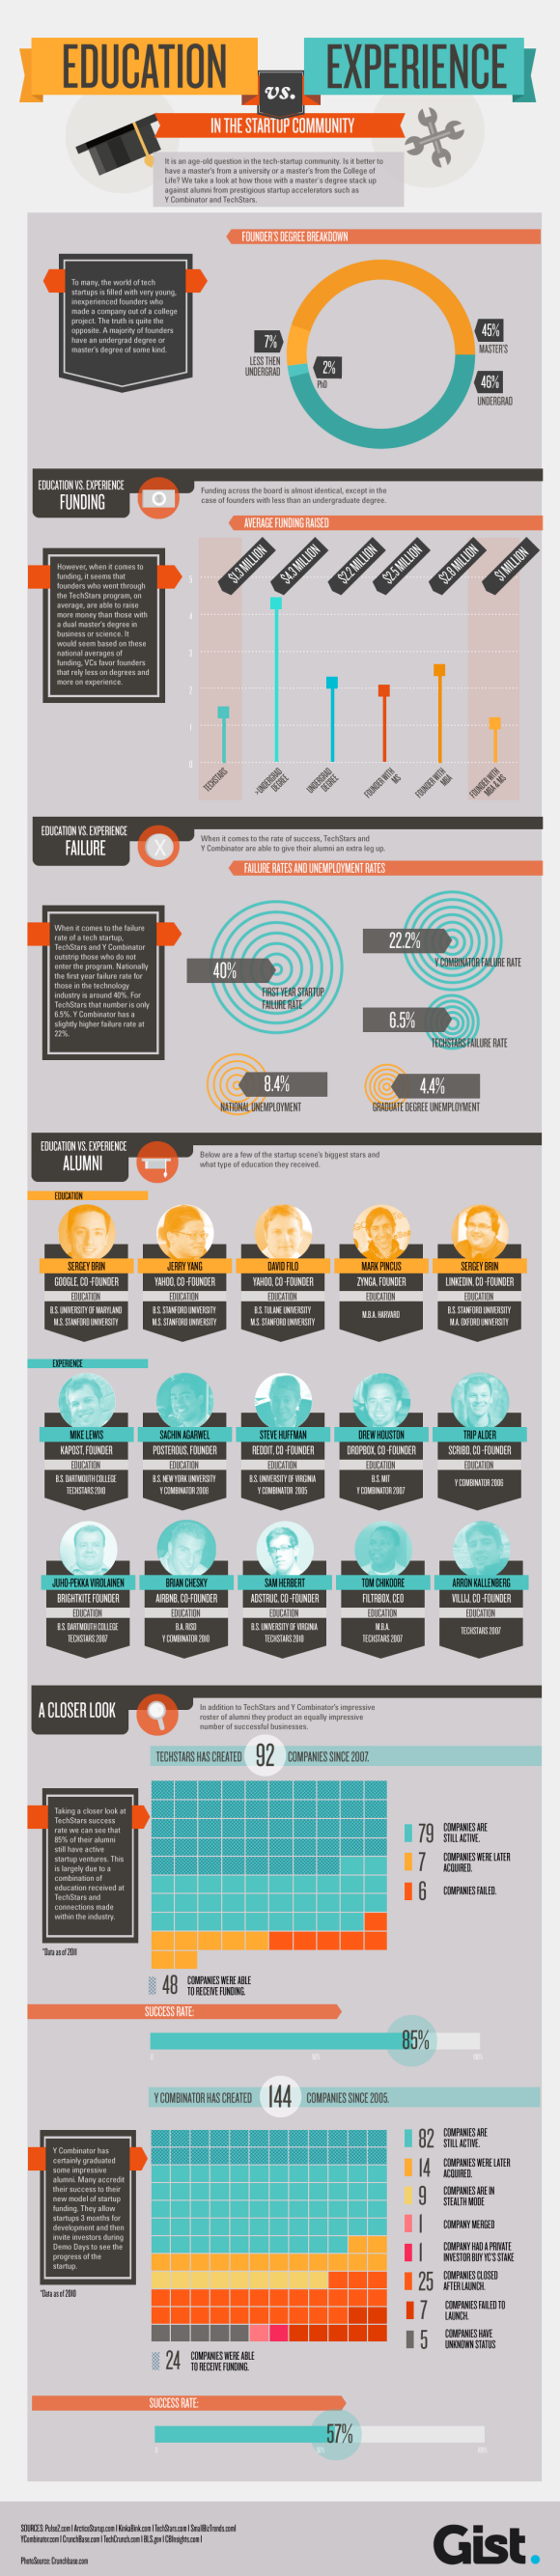 Education vs Experience In The Startup Community [INFOGRAPHIC] educationexperience small